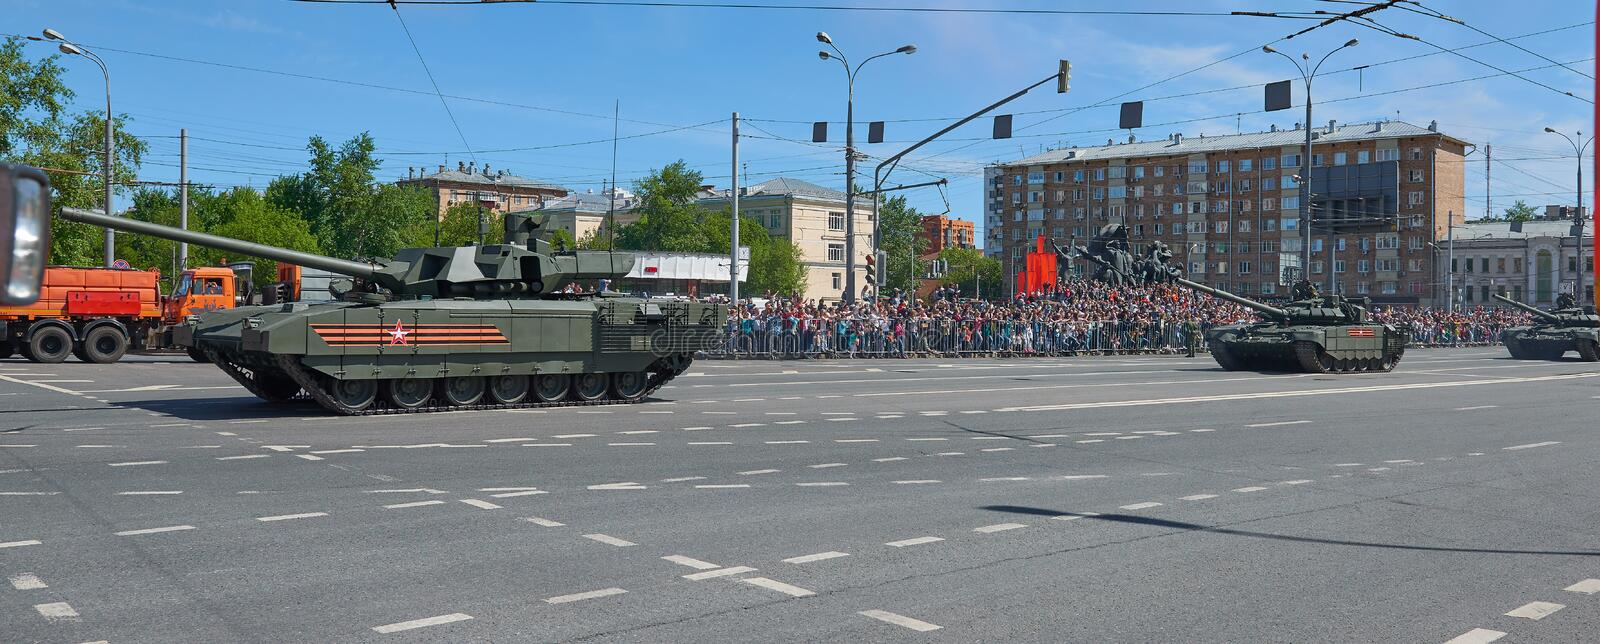 MOSCOW, MAY, 9, 2018: Great Victory holiday parade of Russian military vehicles. Tanks on city streets and celebrating people, Vic. Tory symbols in the stock image